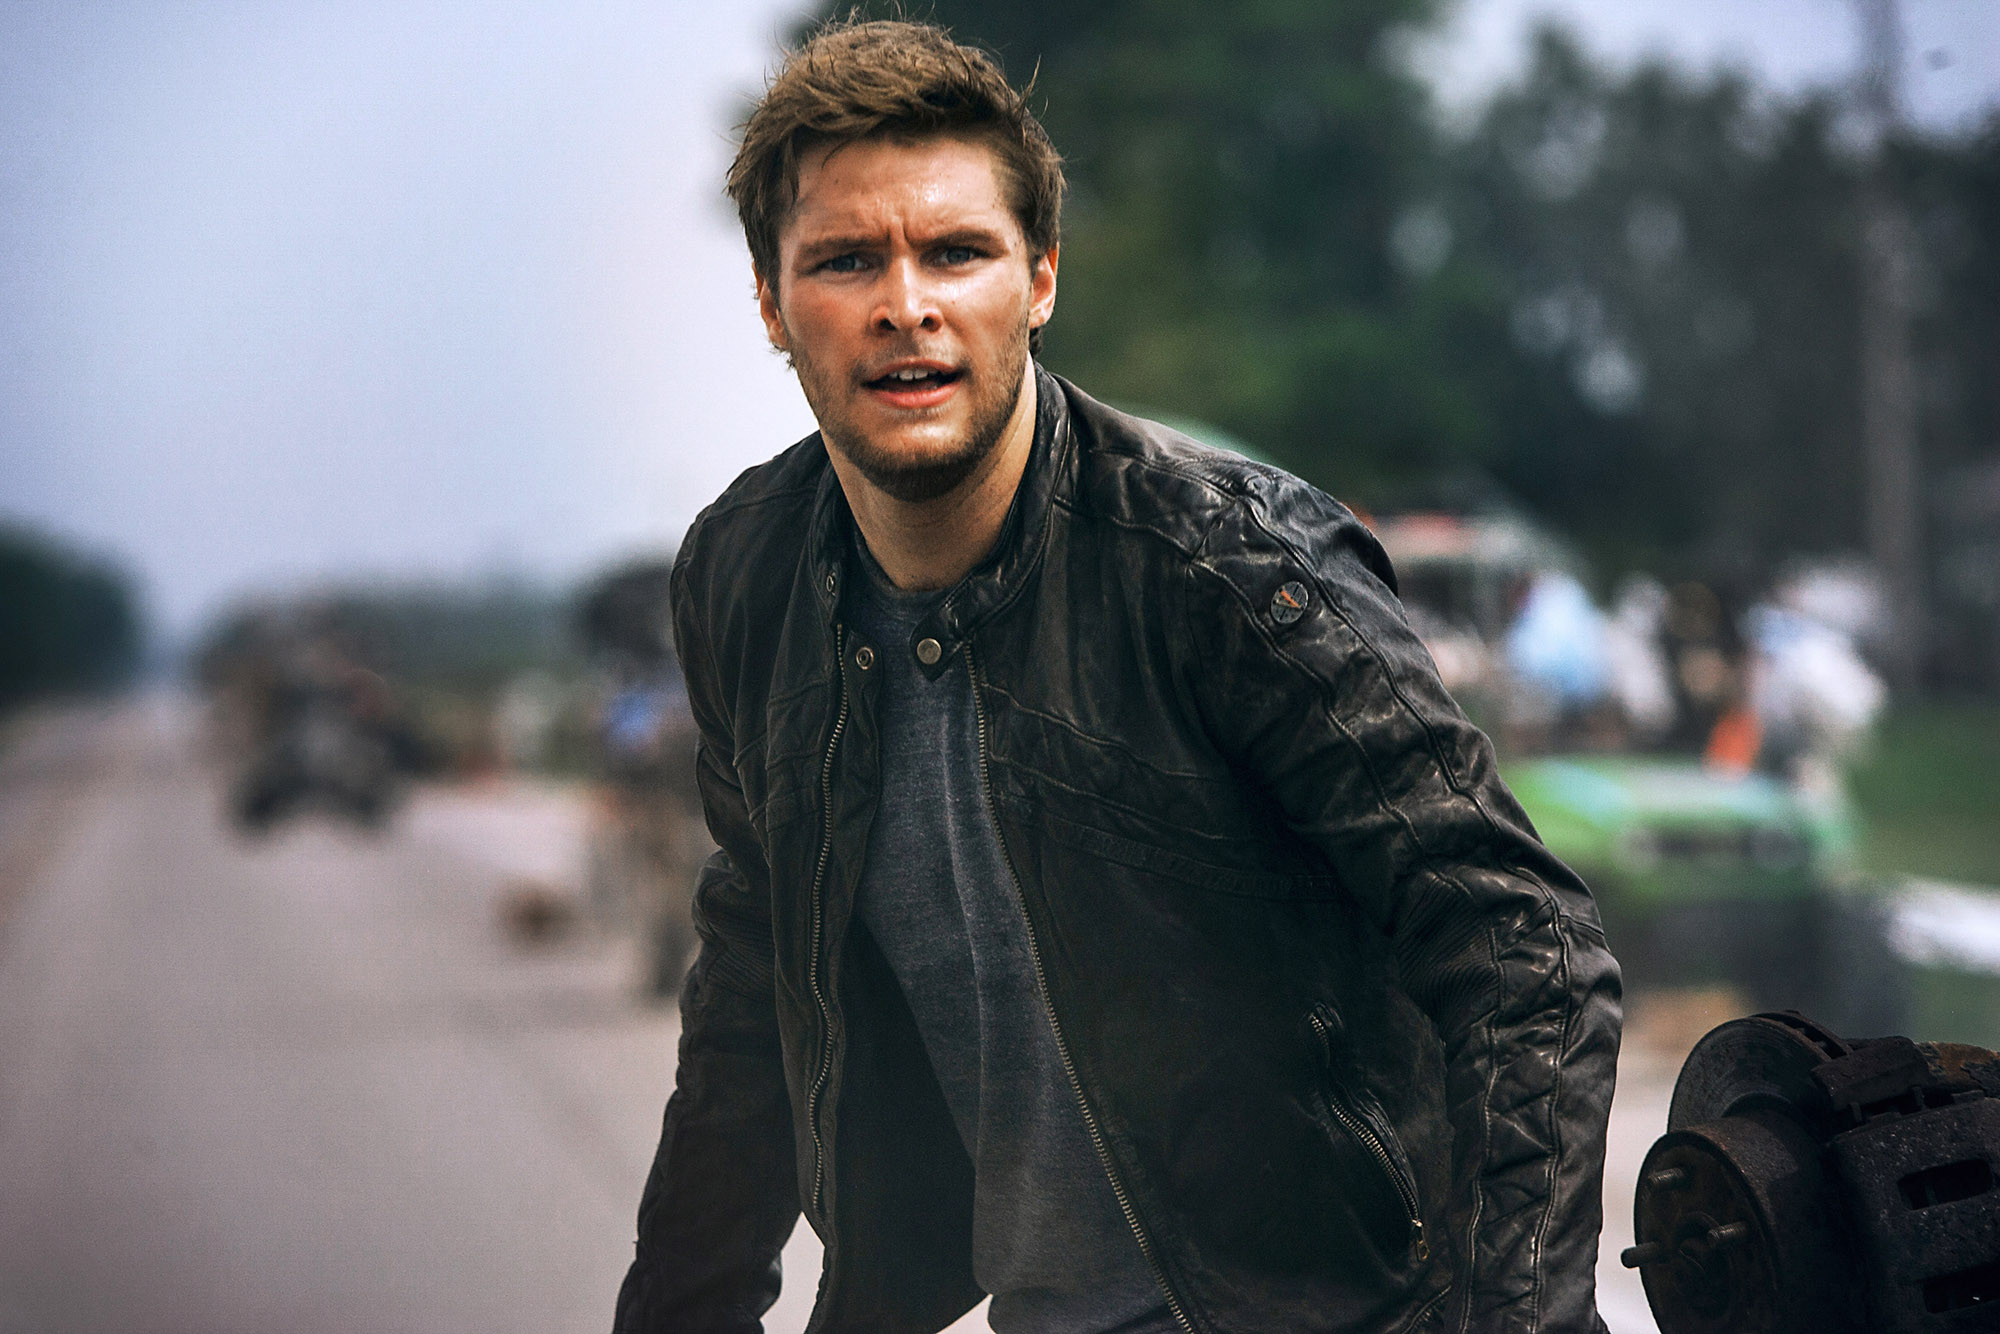 TRANSFORMERS: AGE OF EXTINCTION - 2014 FILM STILL - Jack Reynor - Photo Credit: Andrew Cooper/Paramount Pictures